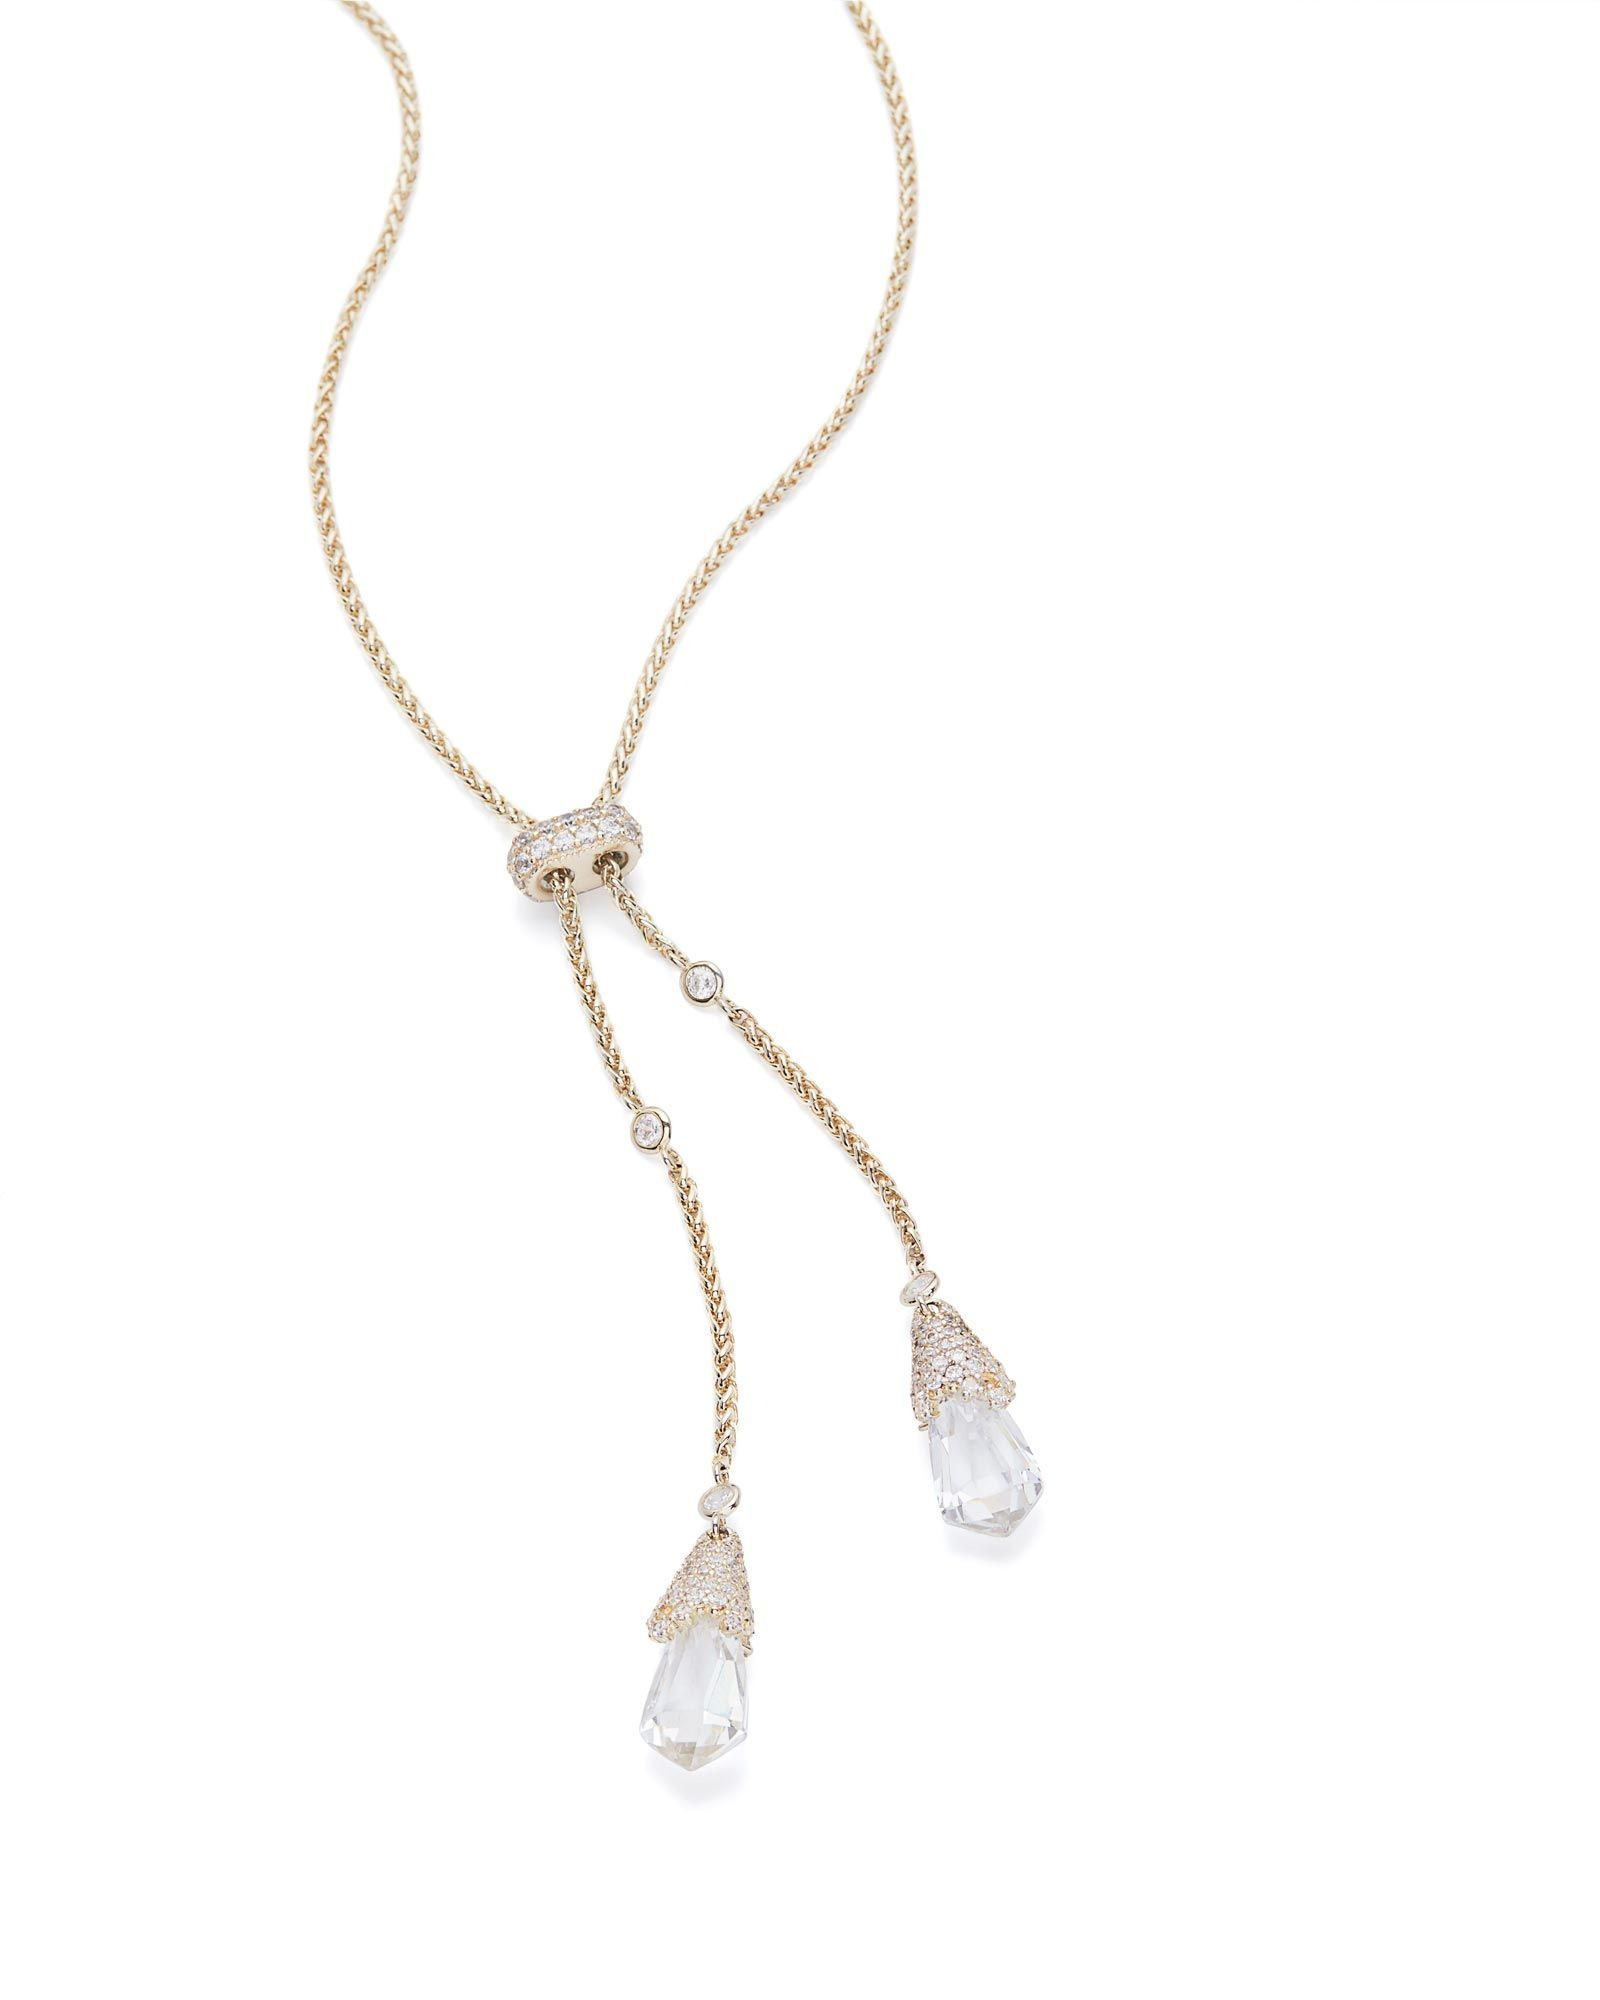 Shop gold choker necklaces at kendra scott with an adjustable